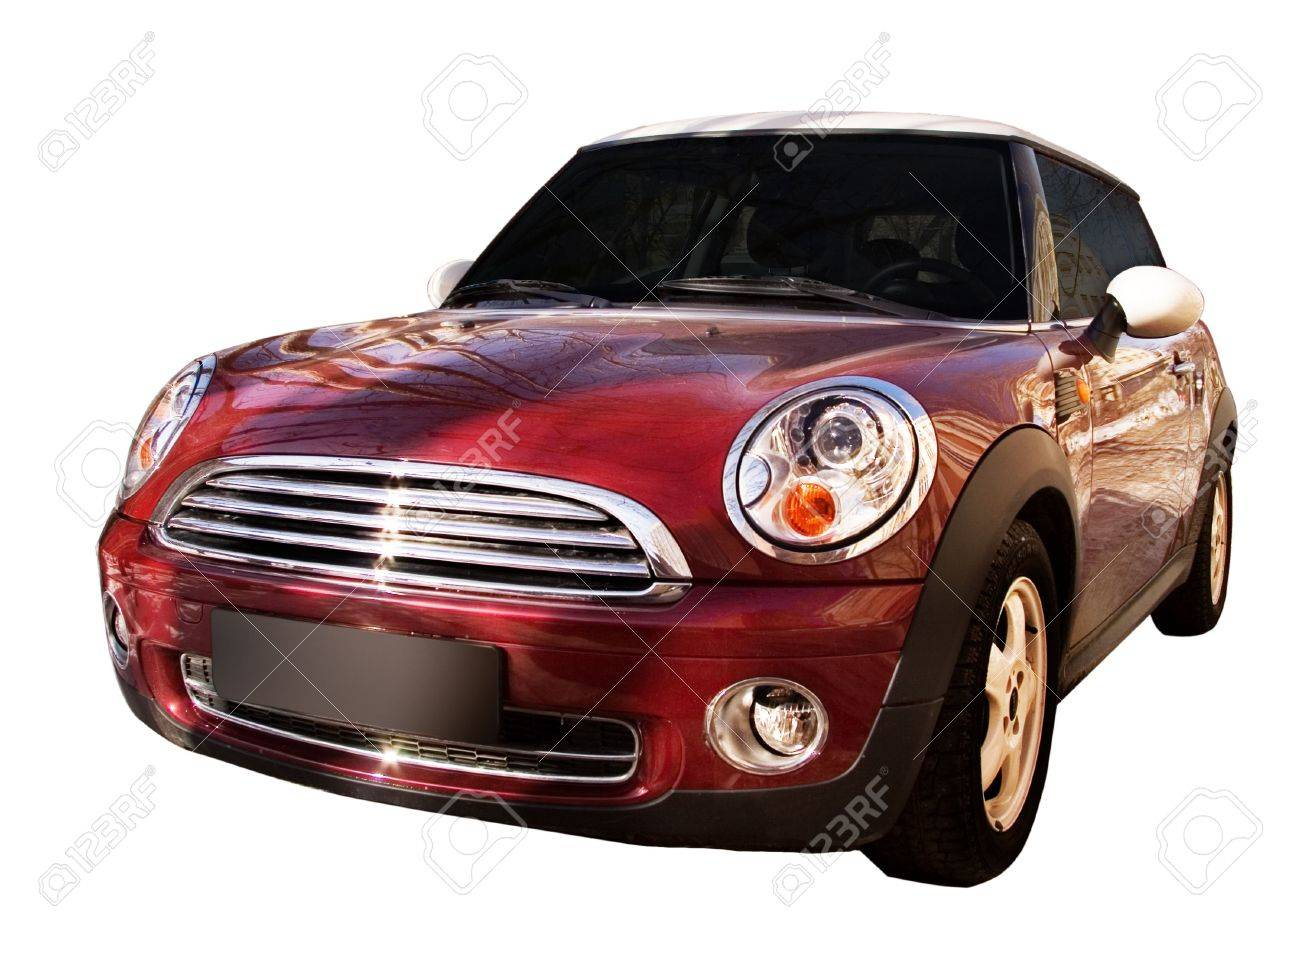 The modern car. Isolated on a white background for easy use. Stock Photo - 4416211